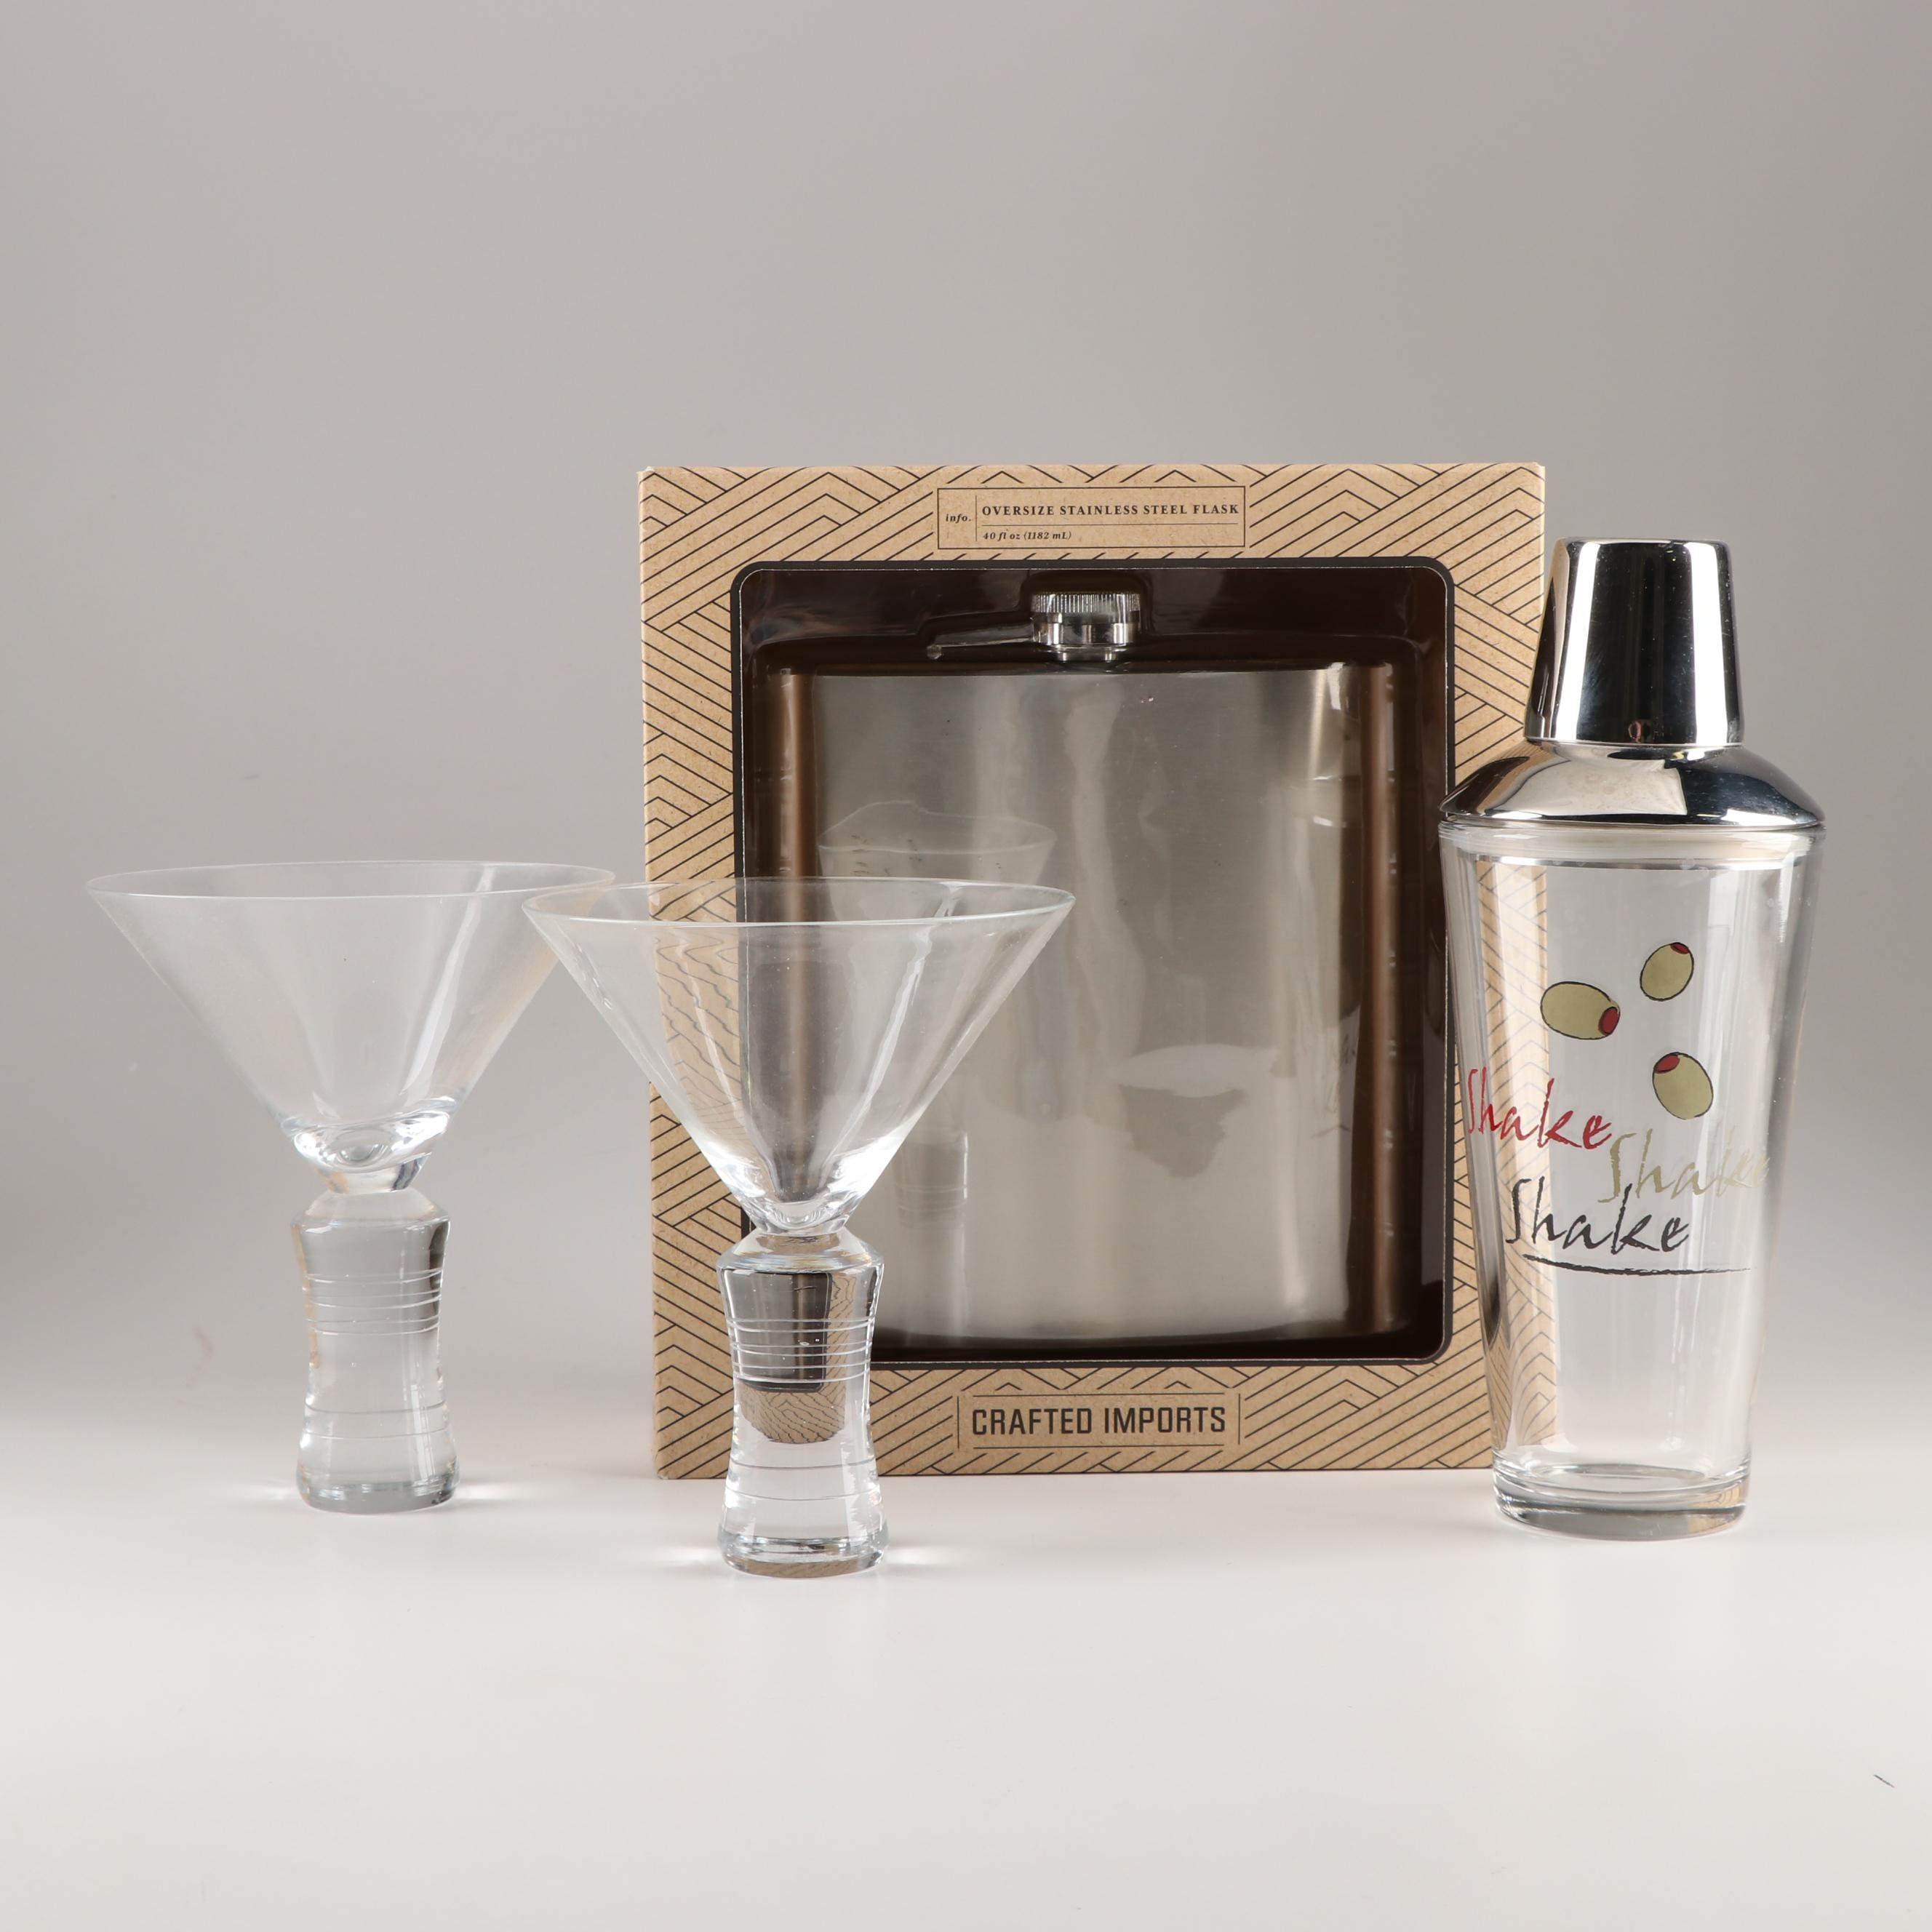 Oversized Flask, Cocktail Shaker and Martini Glasses